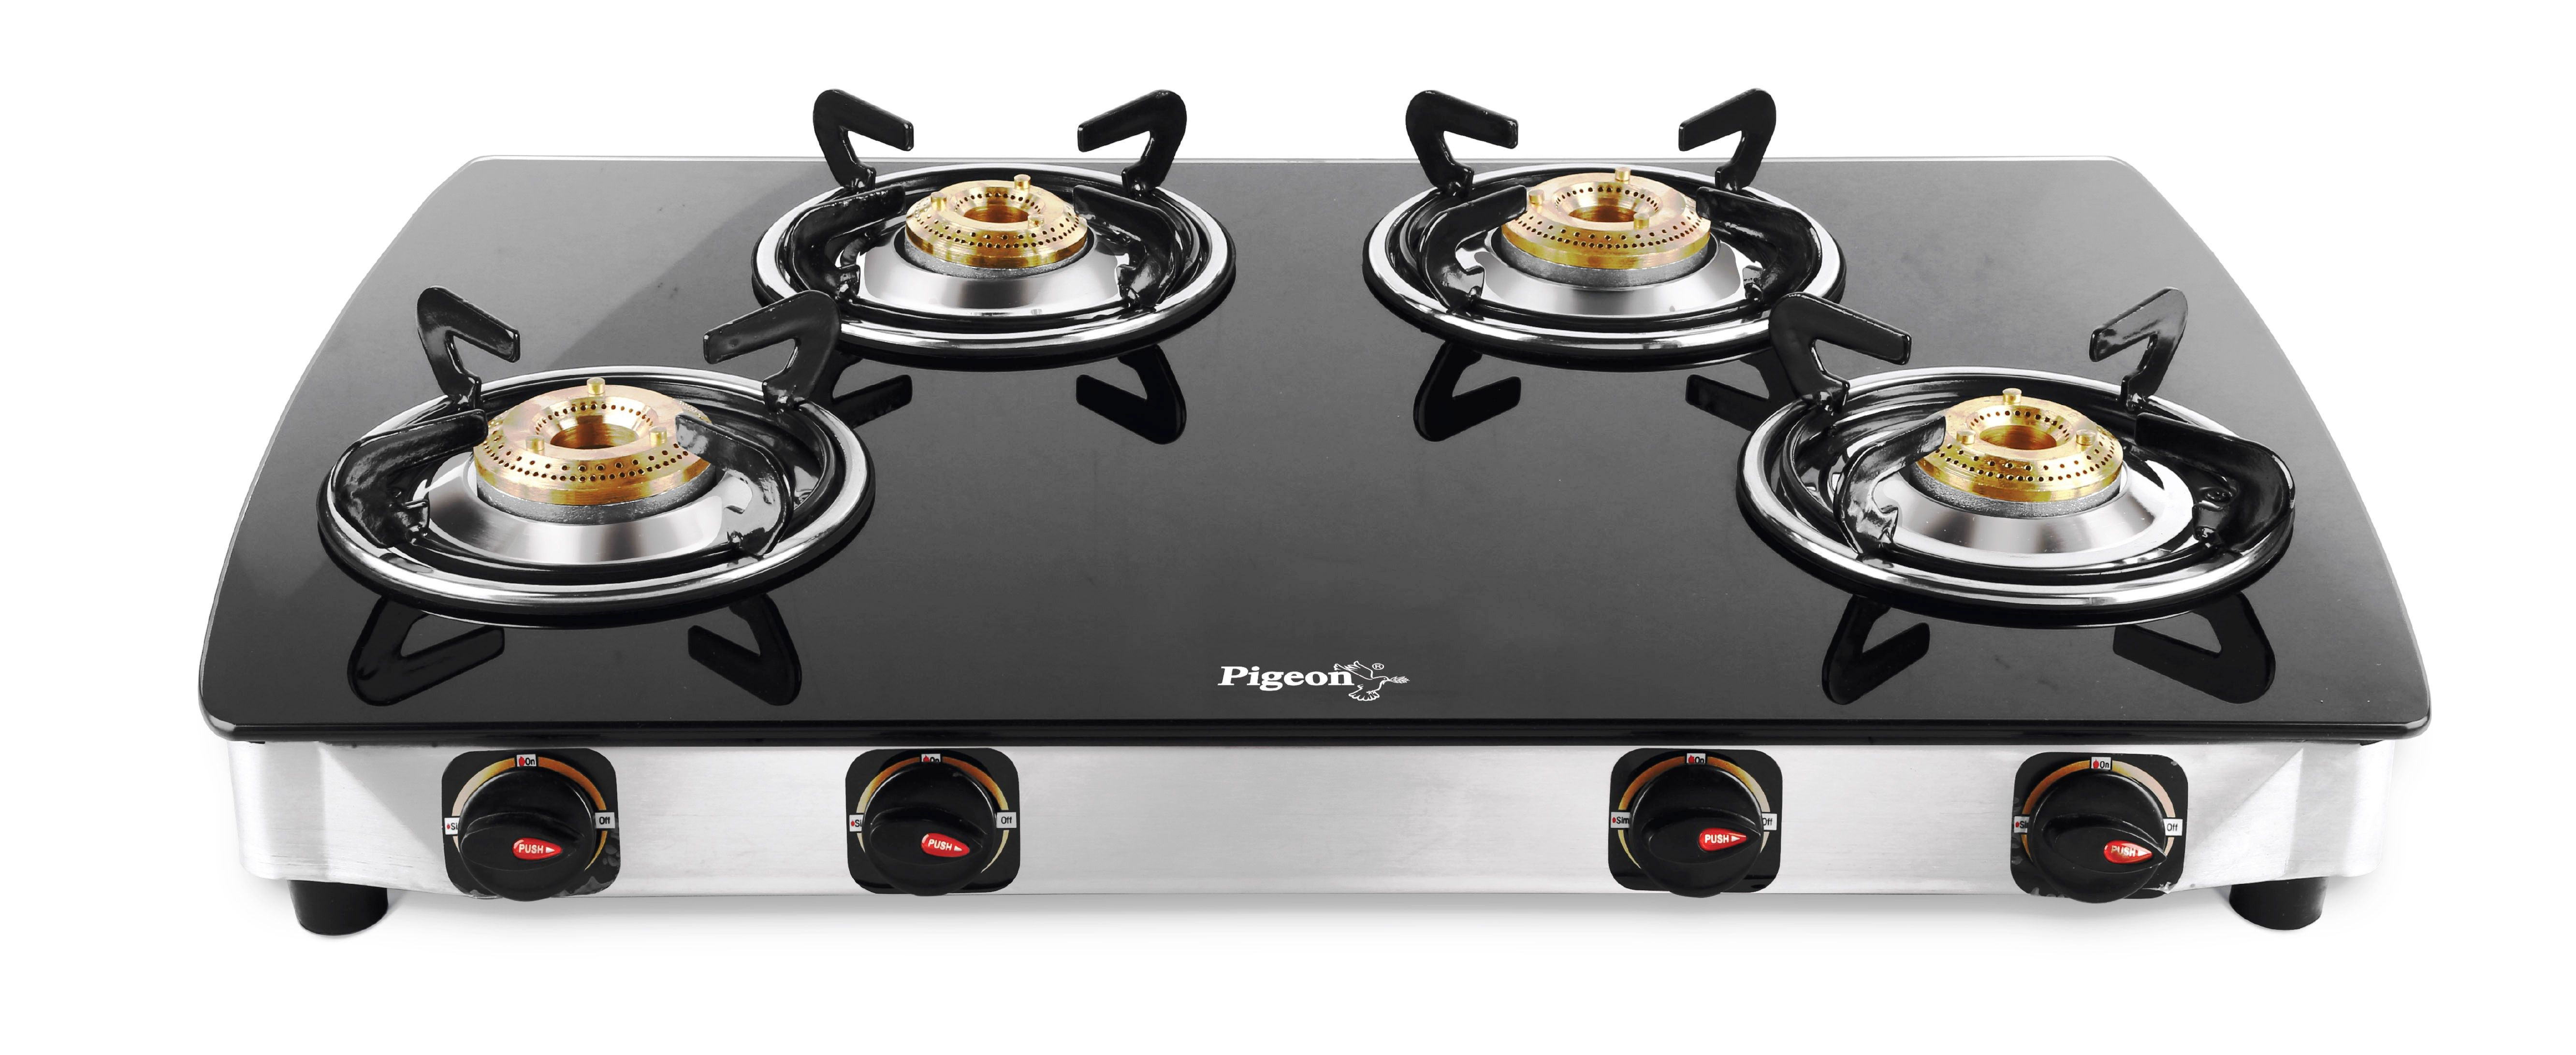 2f01ccc80 Pigeon oval ZZ 4 Burner Manual Gas Stove Price in India - Buy Pigeon ...